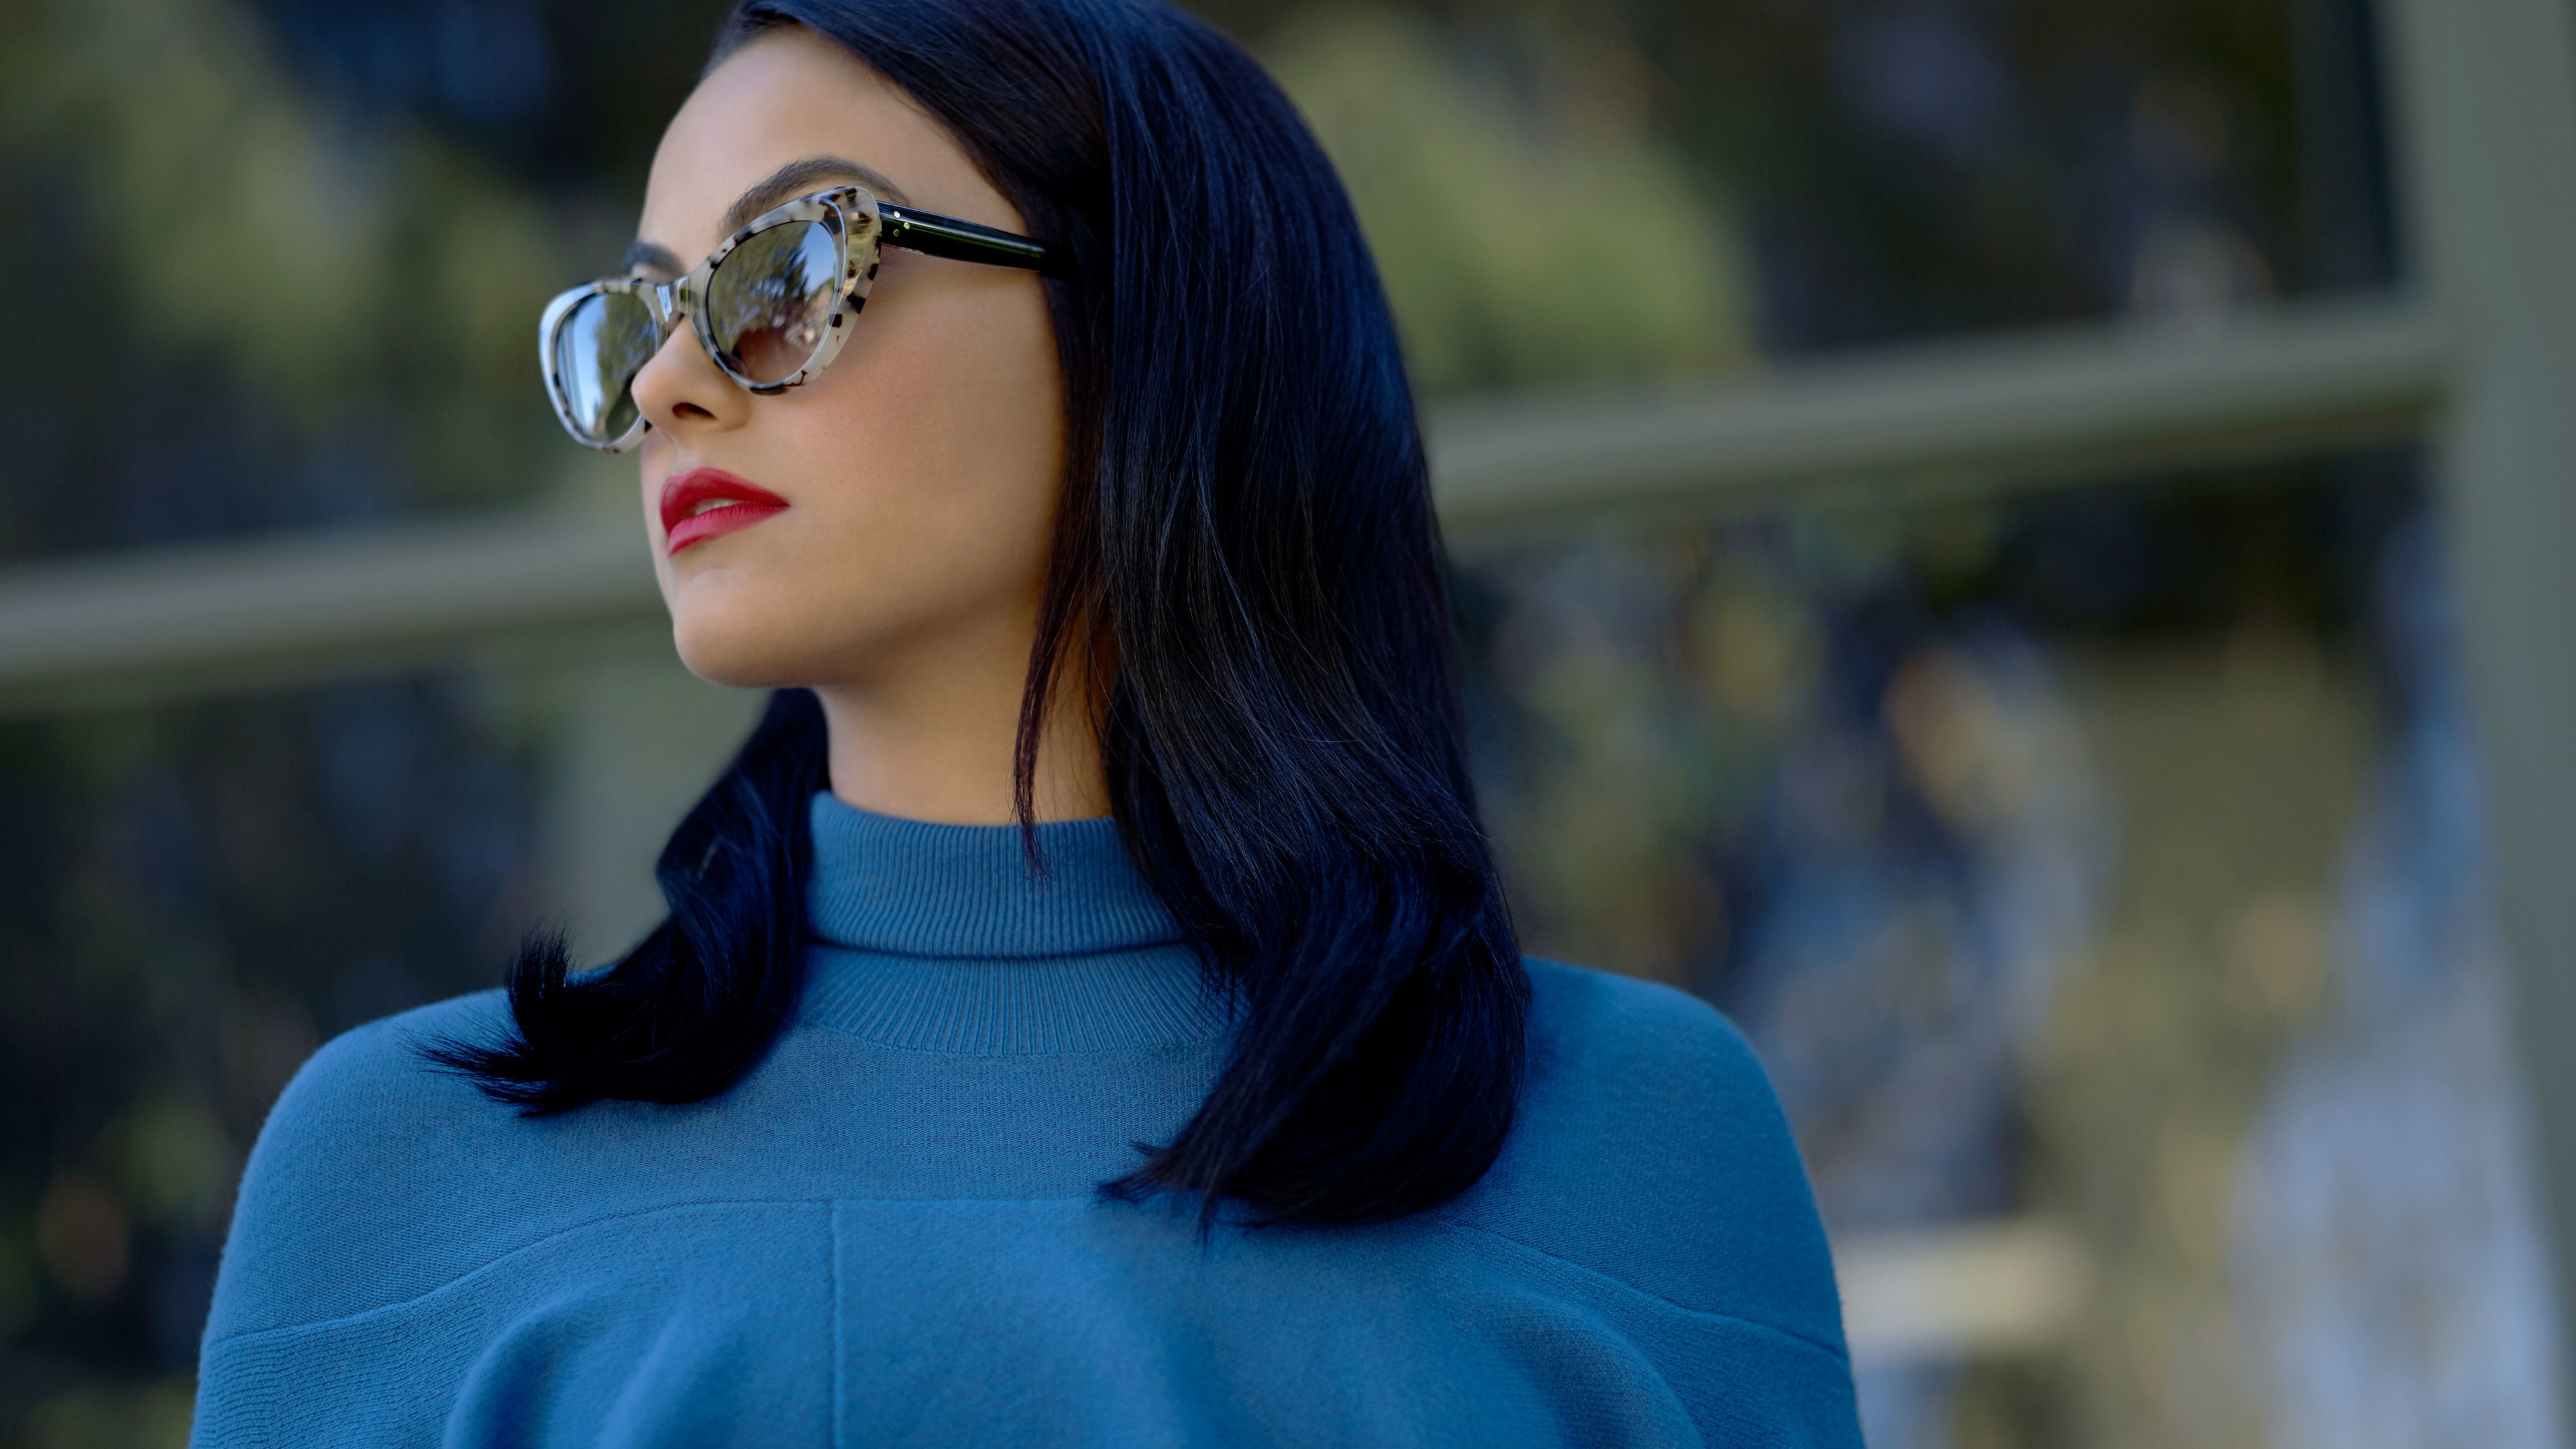 camila mendes 2017 latest 1536863063 - Camila Mendes 2017 Latest - hd-wallpapers, girls wallpapers, celebrities wallpapers, camila mendes wallpapers, 5k wallpapers, 4k-wallpapers